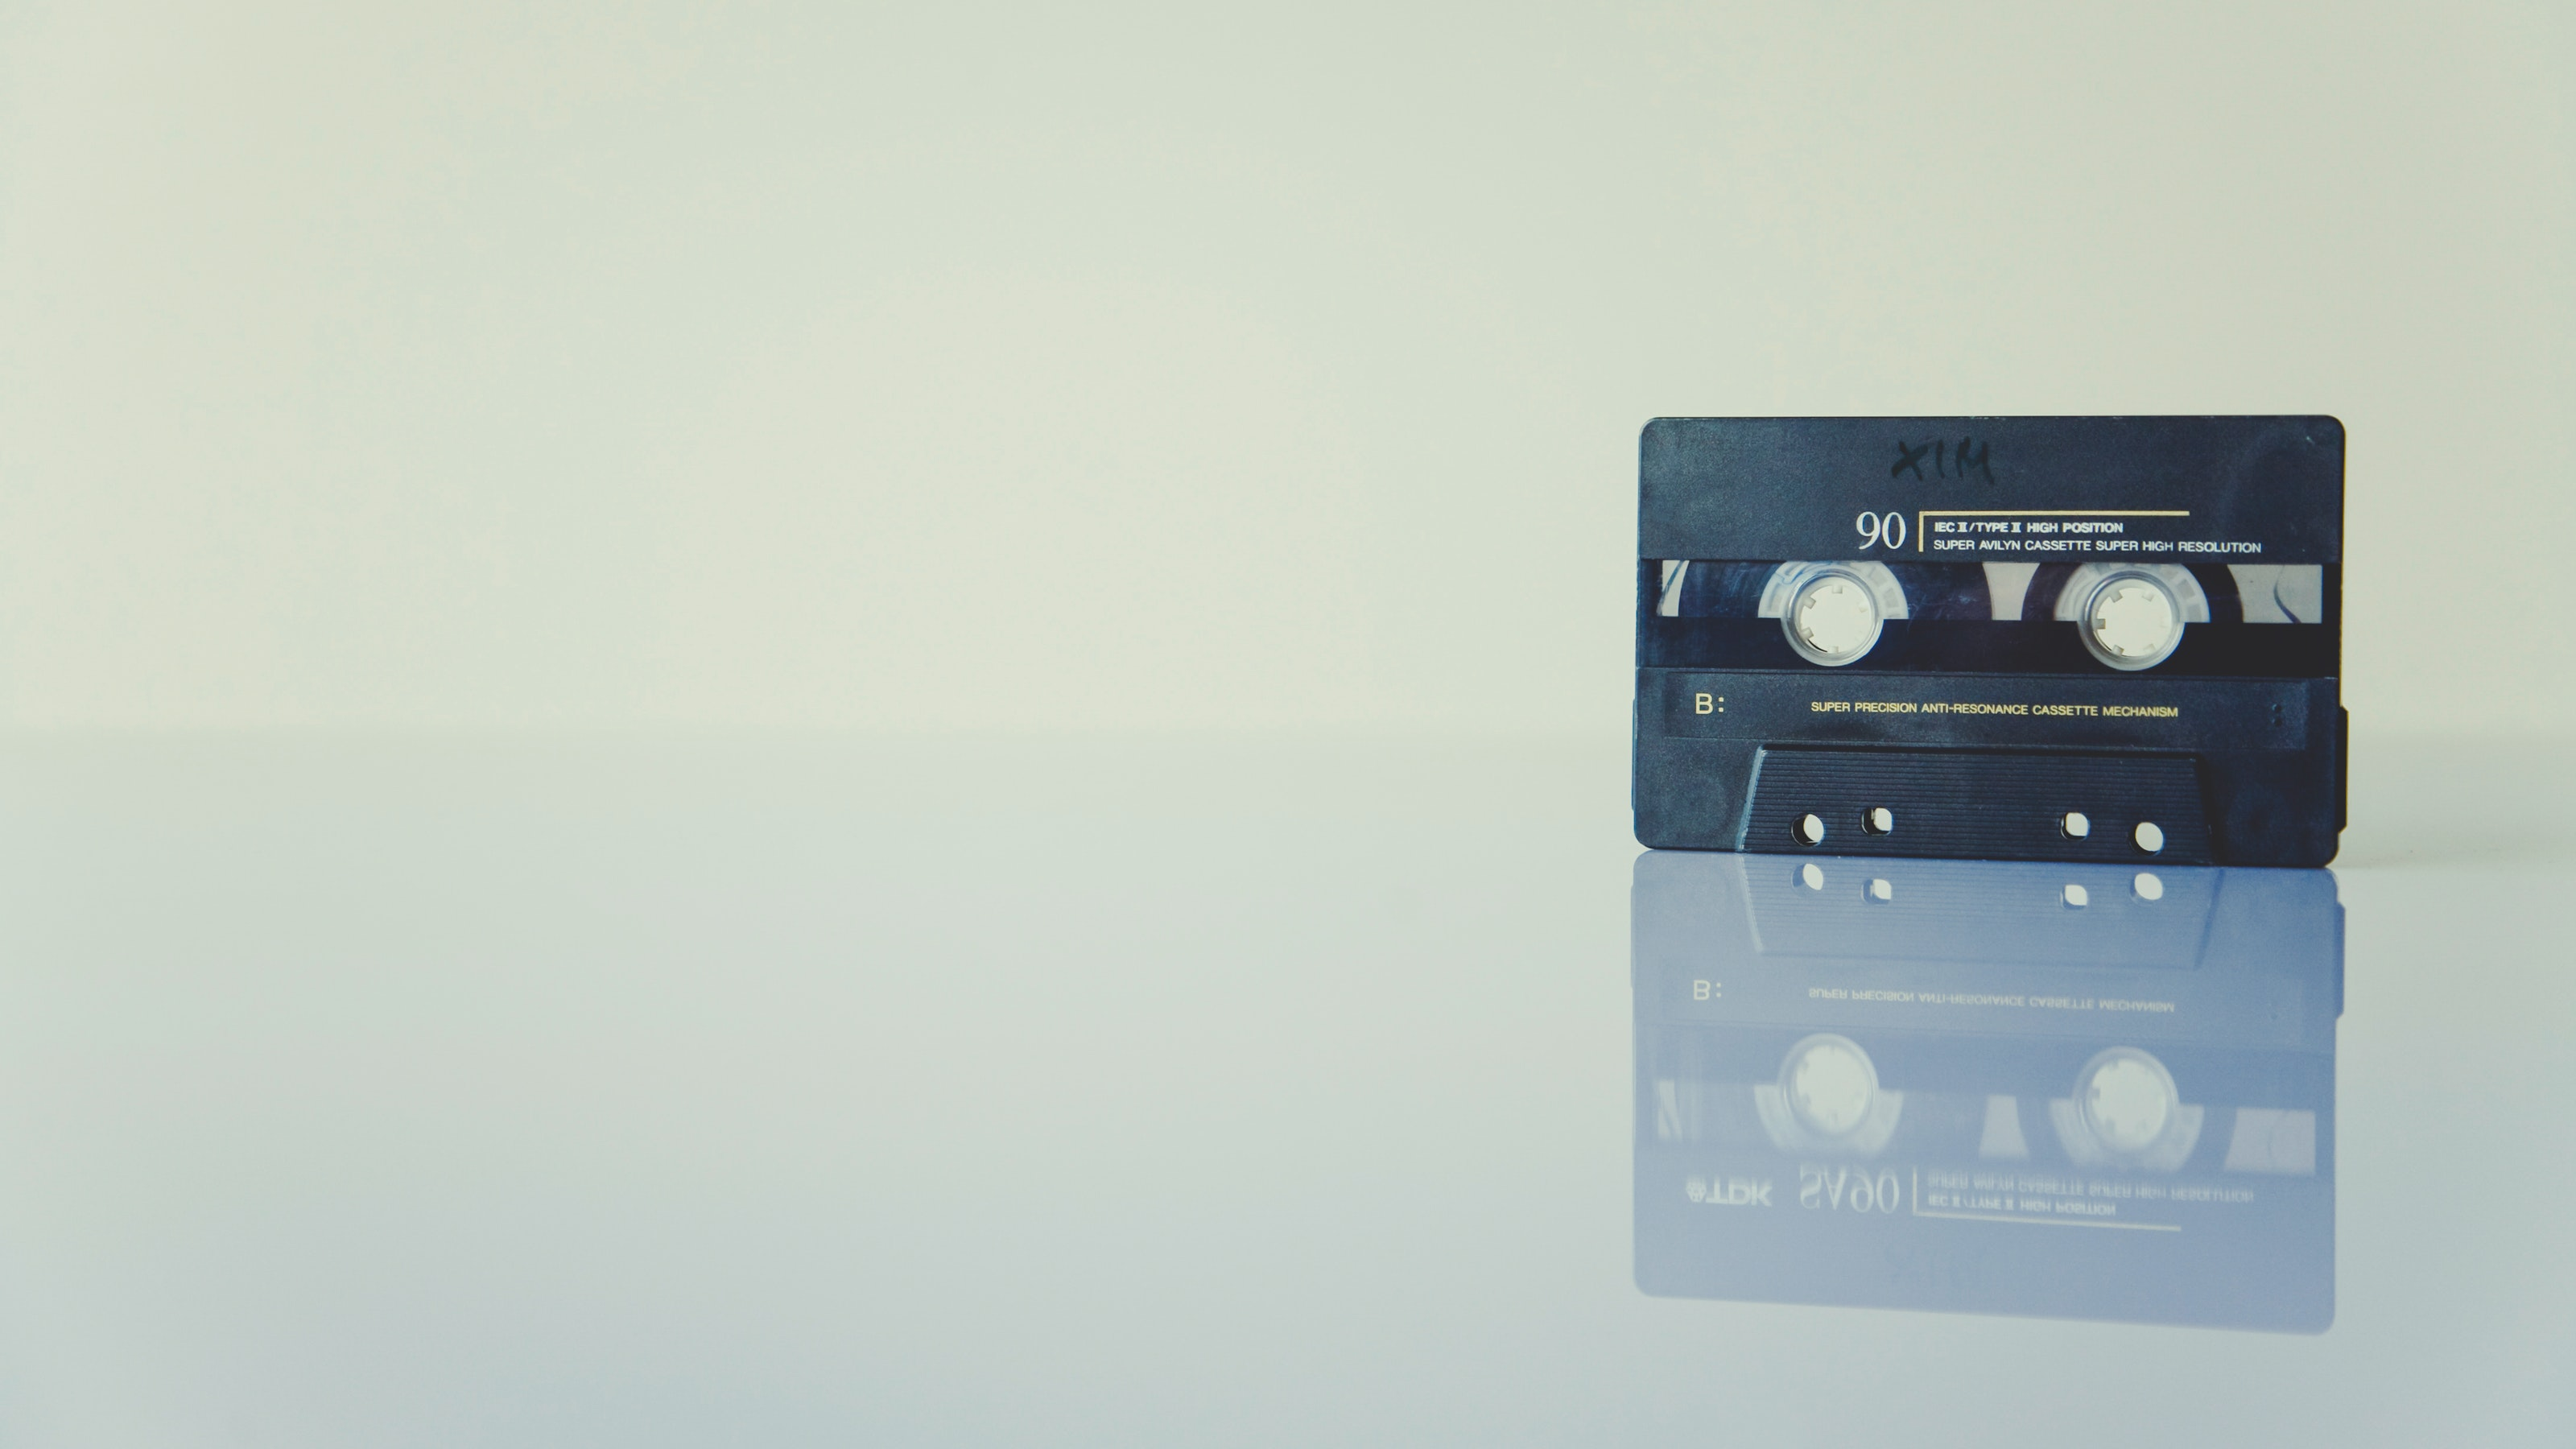 An old cassette tape.